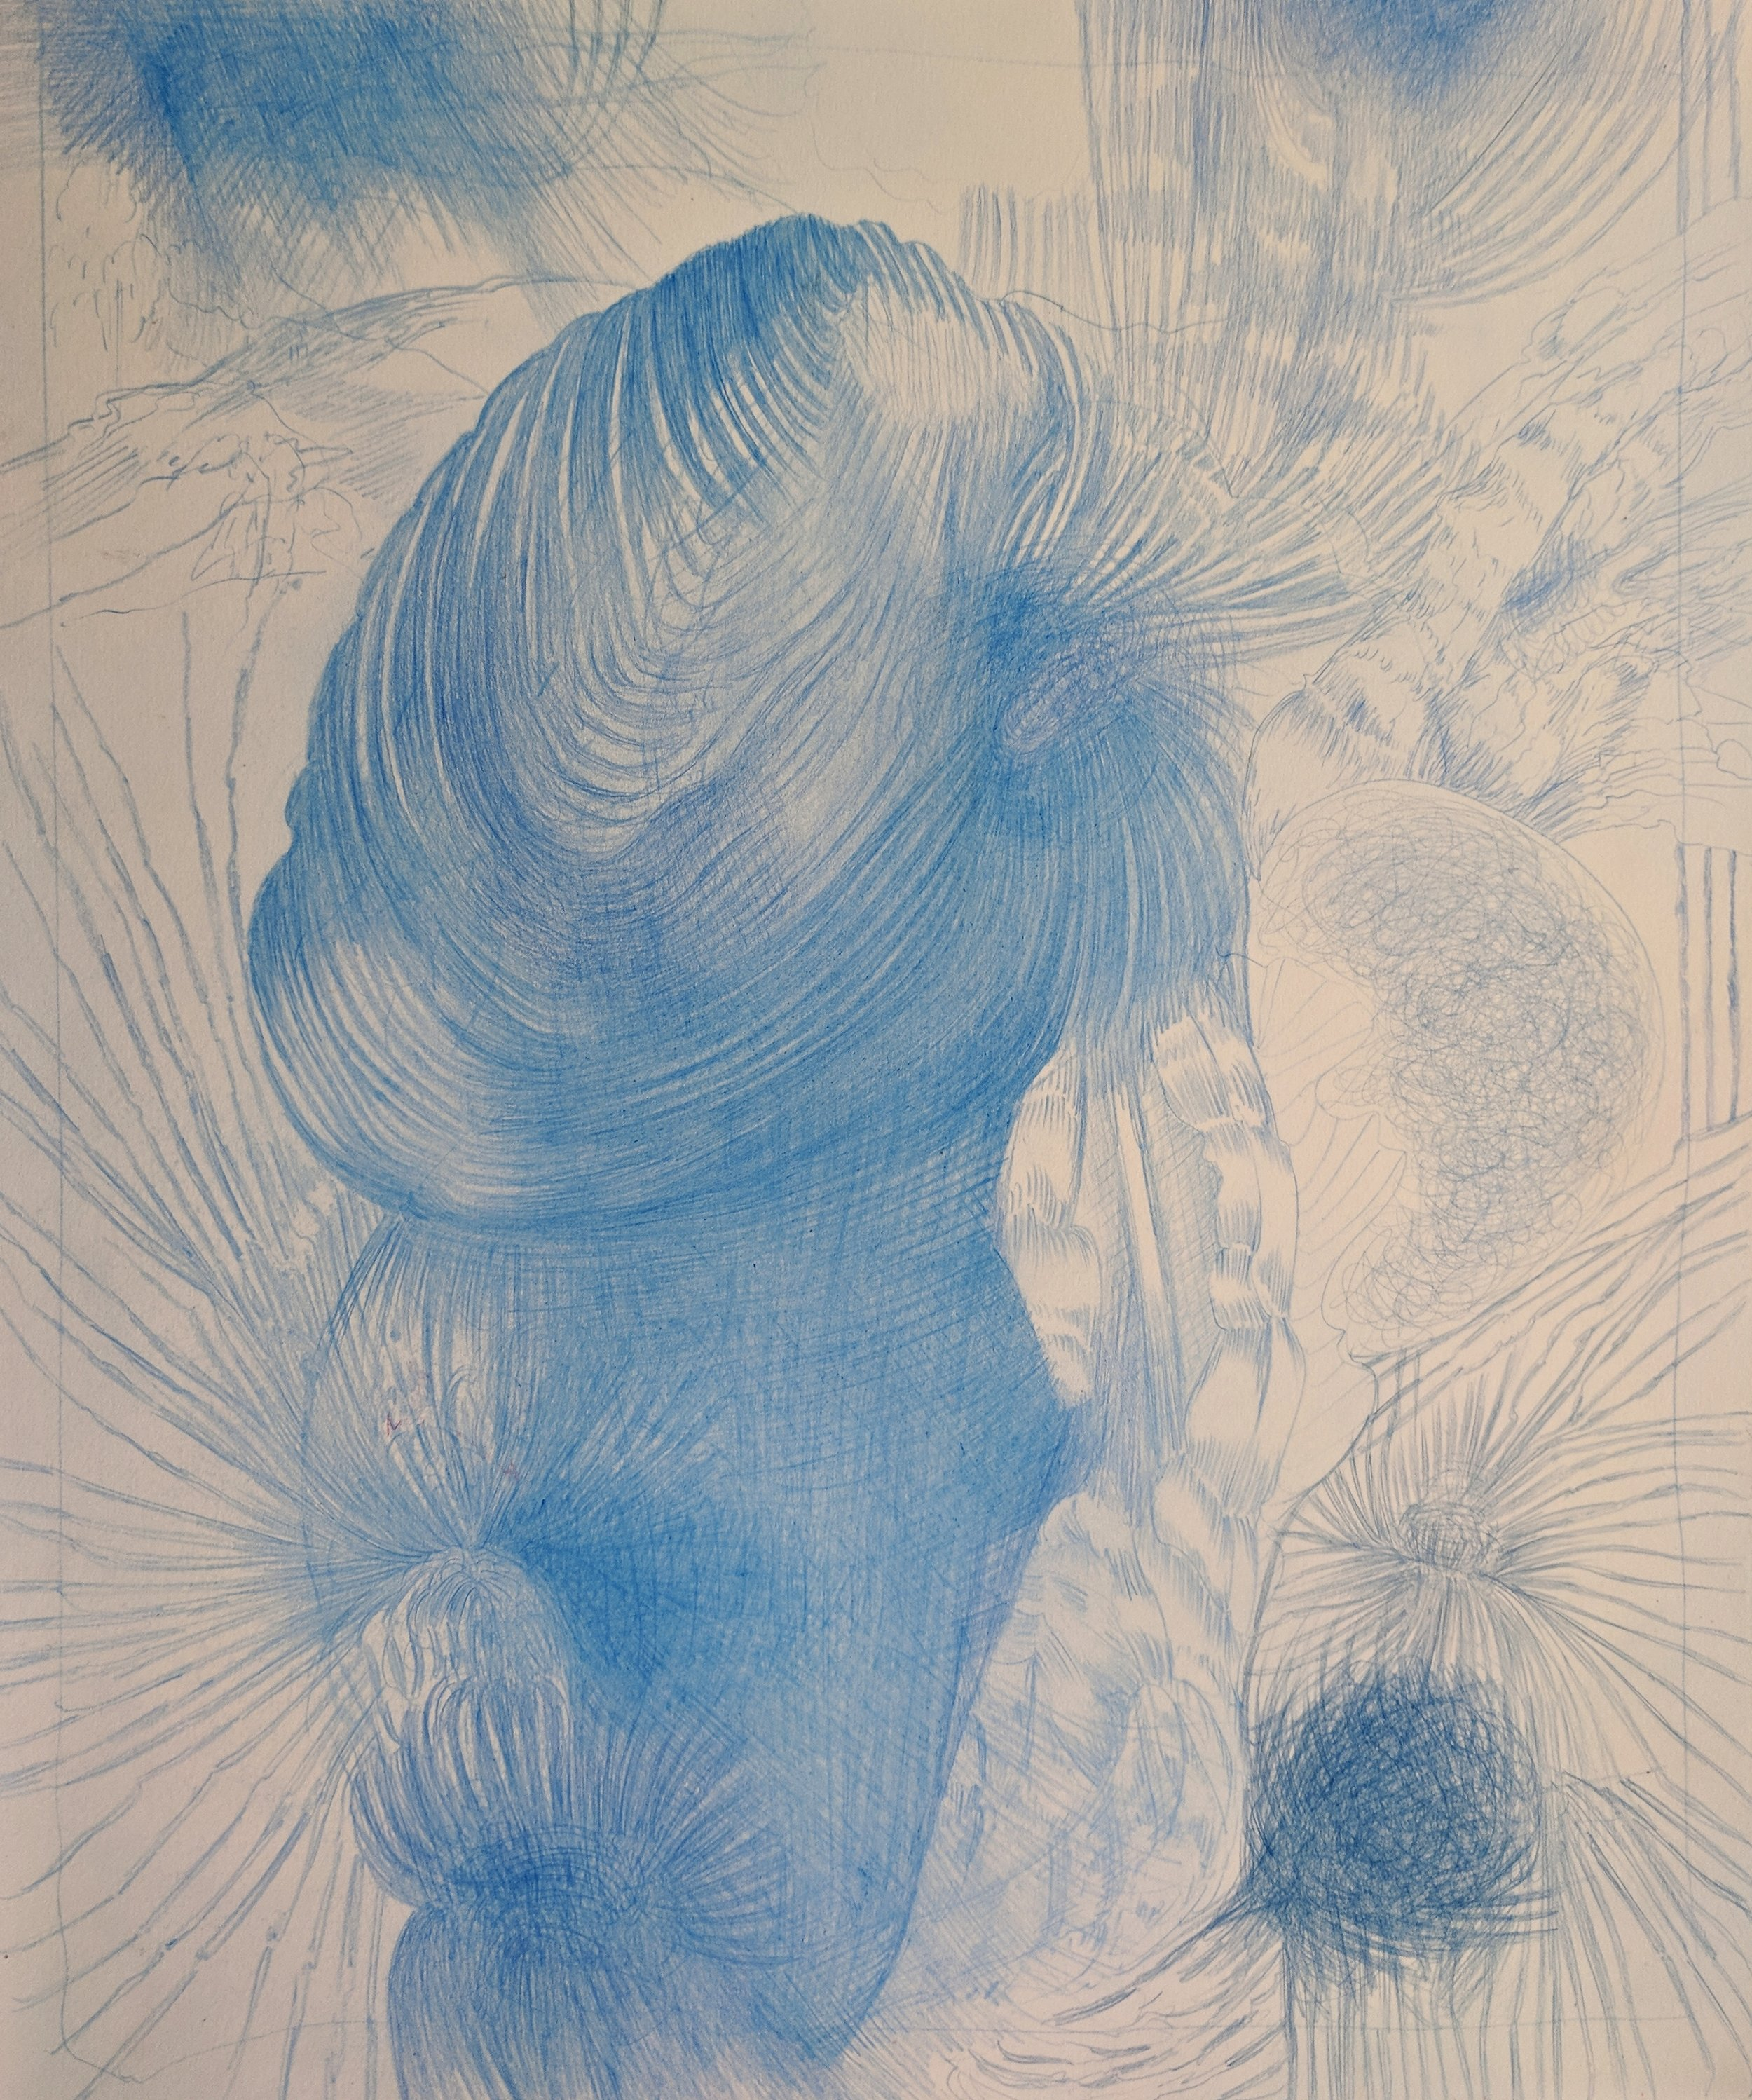 Blue Pines and Heart Flares, 2018, 17 x 14 inches, pencil on paper